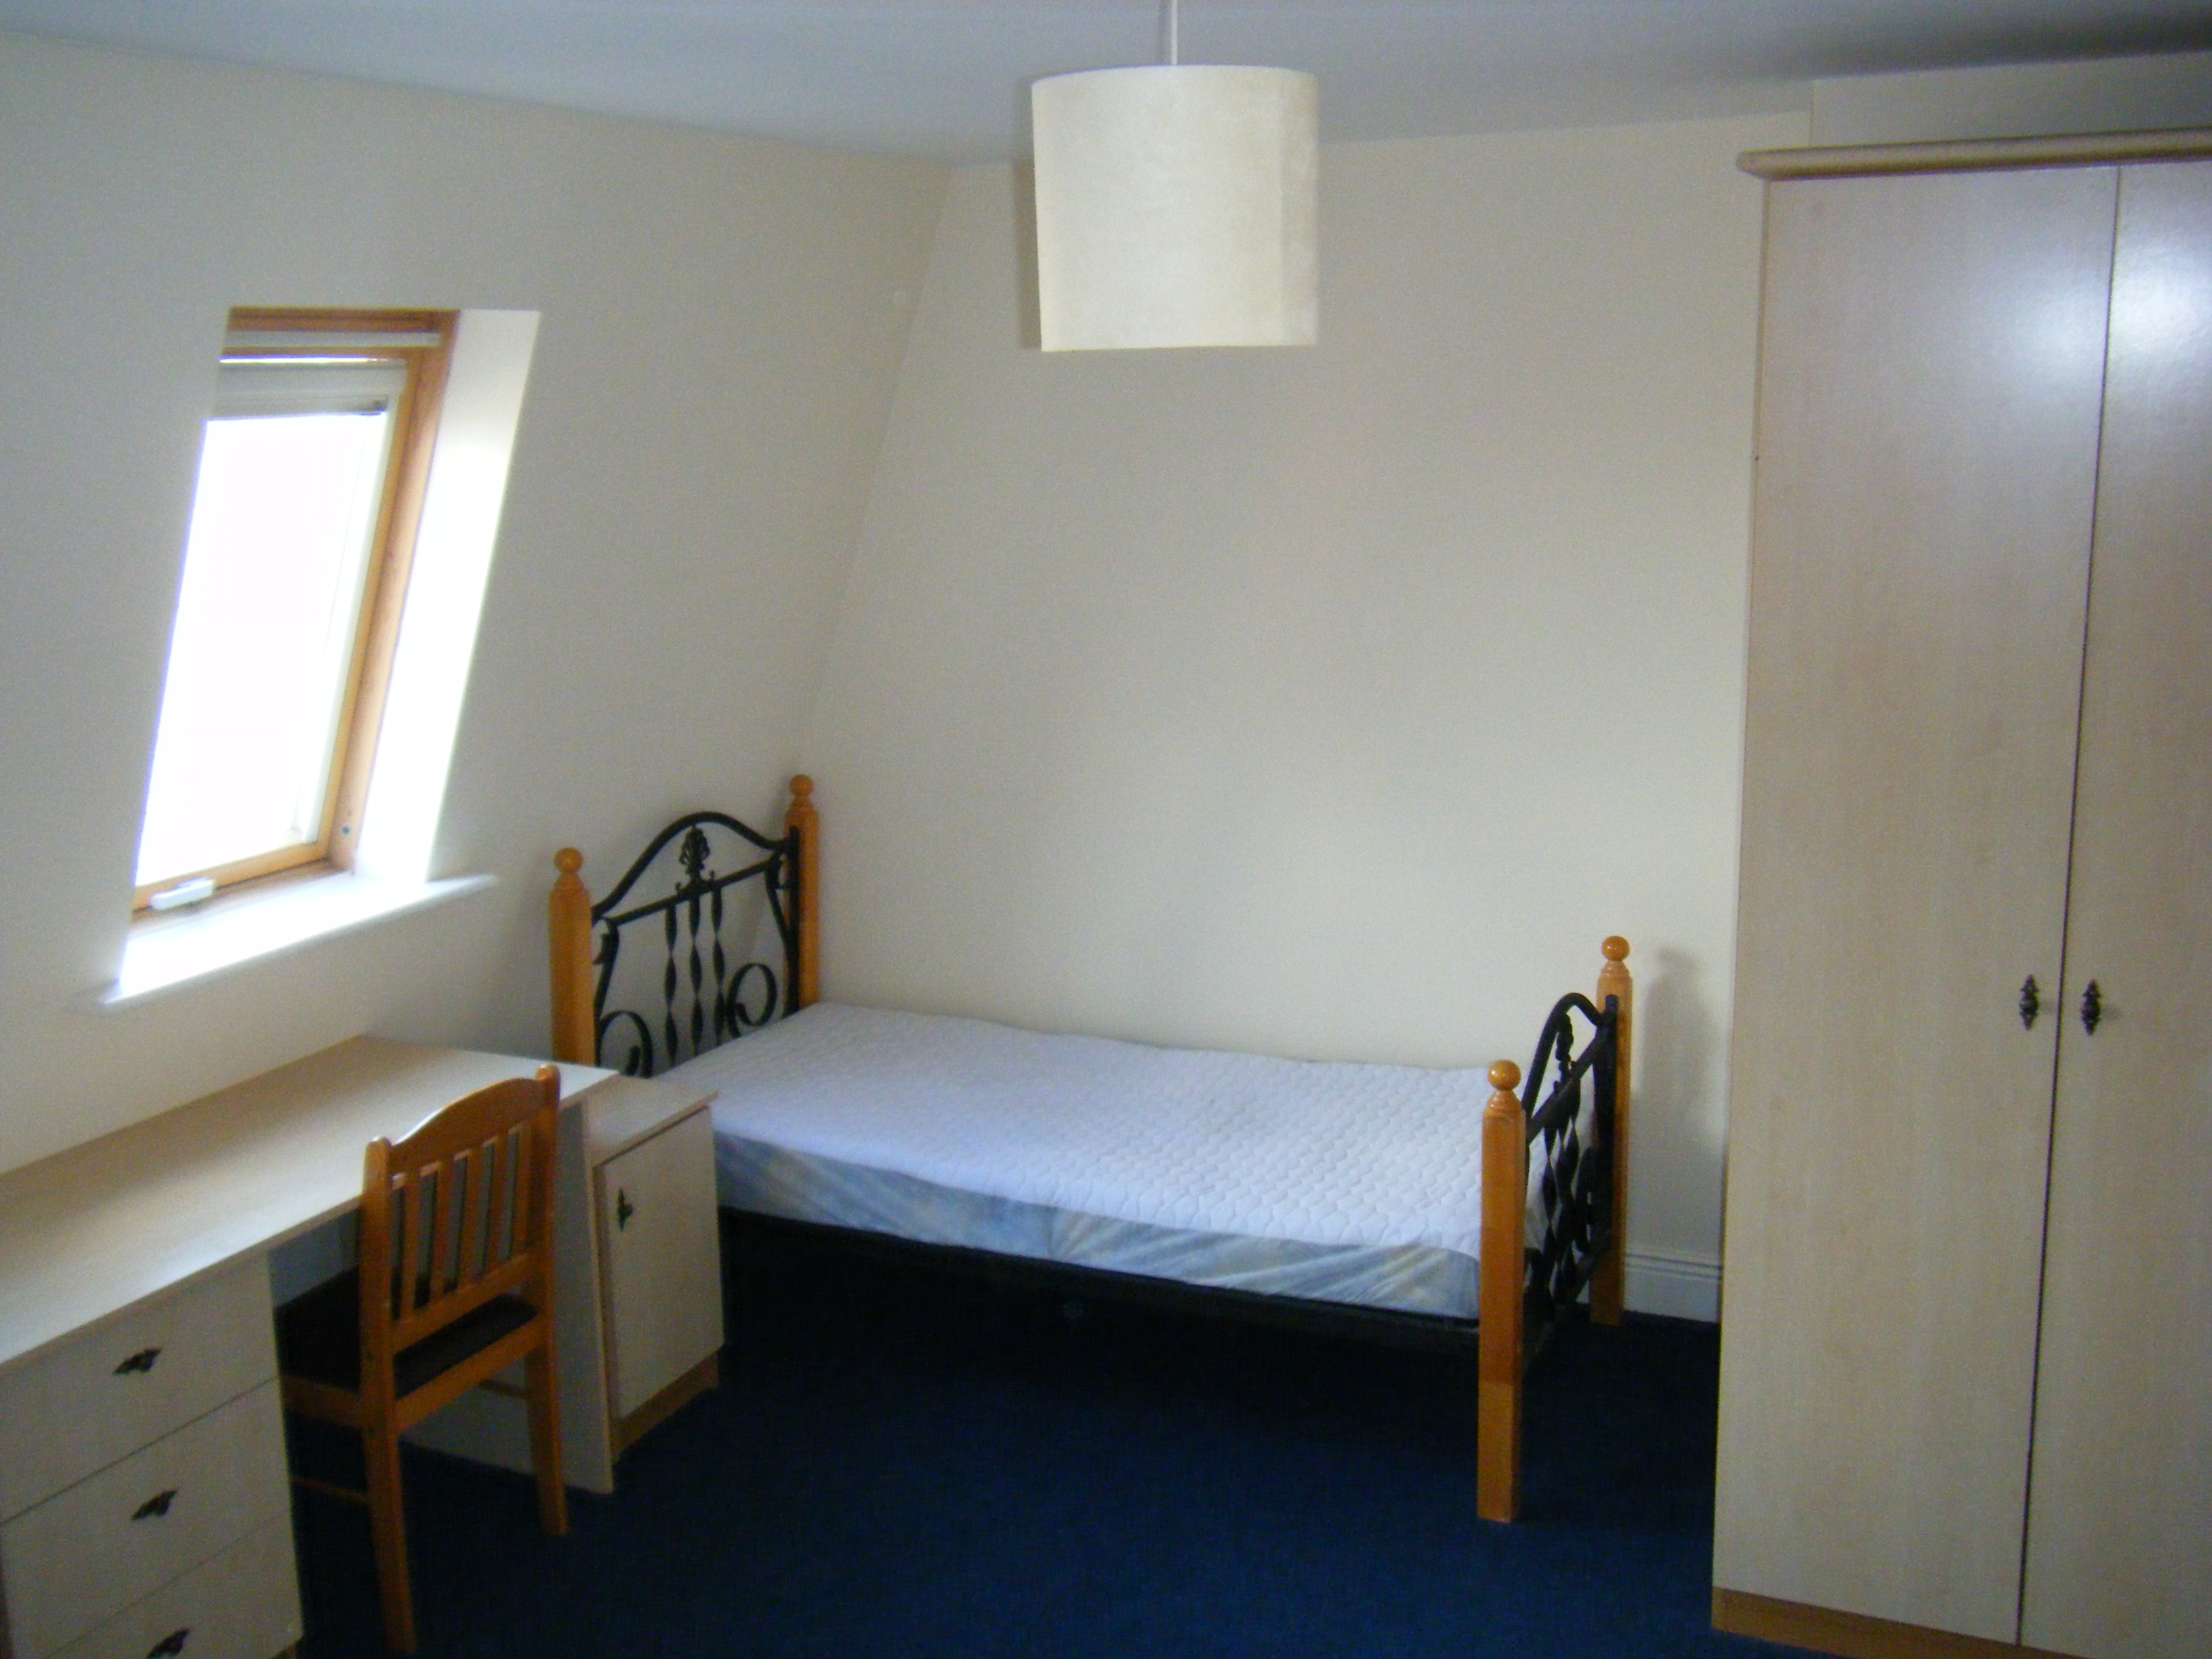 student apartments for rent & university housing near city centre